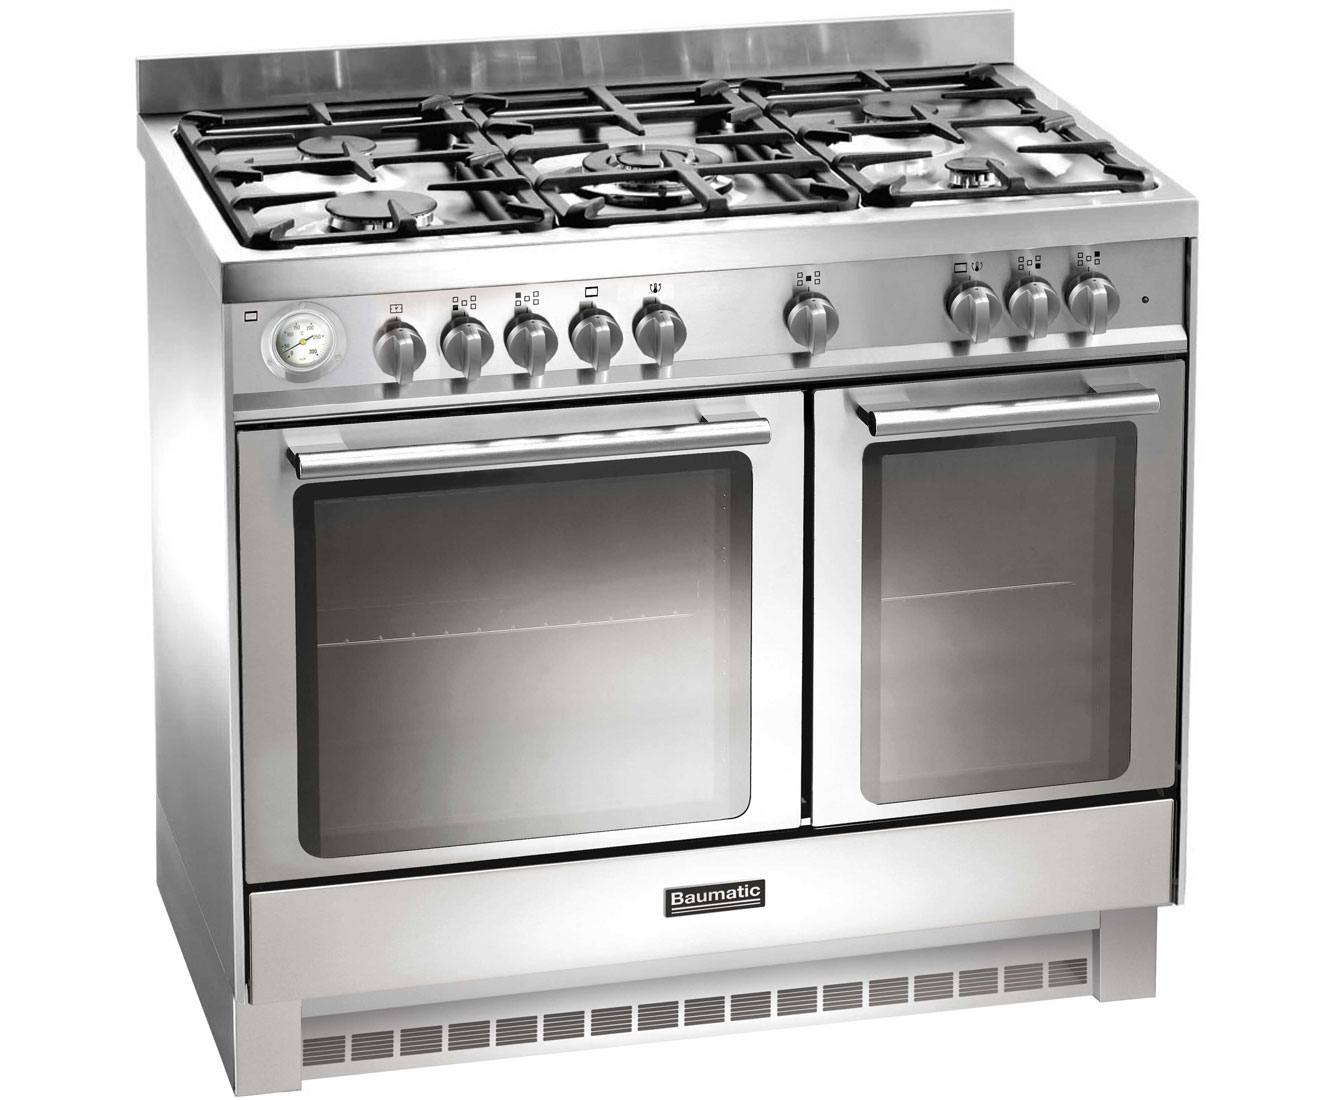 Baumatic BCD925SS Free Standing Range Cooker in Stainless Steel